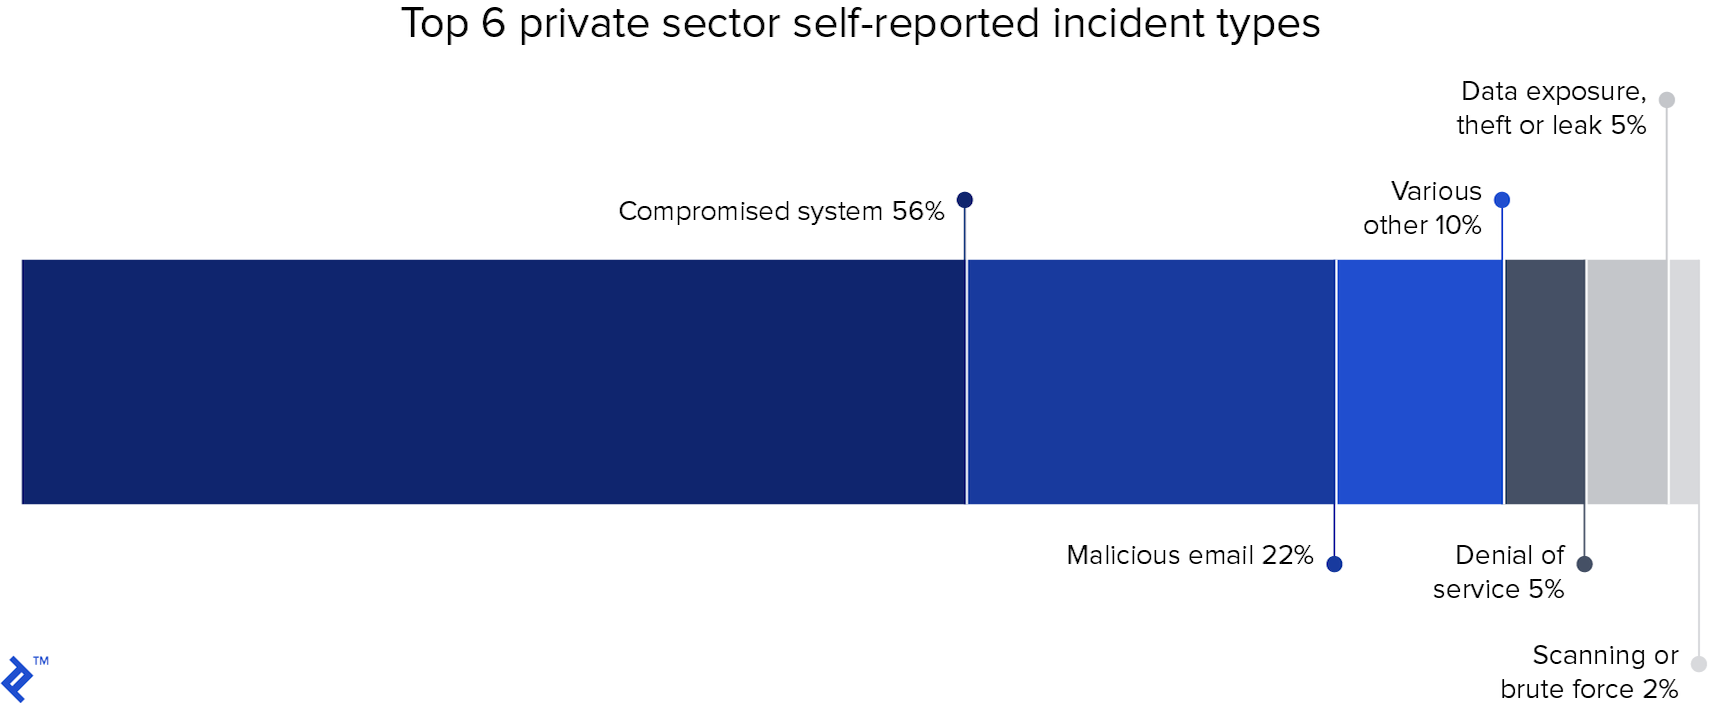 Top 6 private sector self-reported incident types (Compromised system leading with 56%)